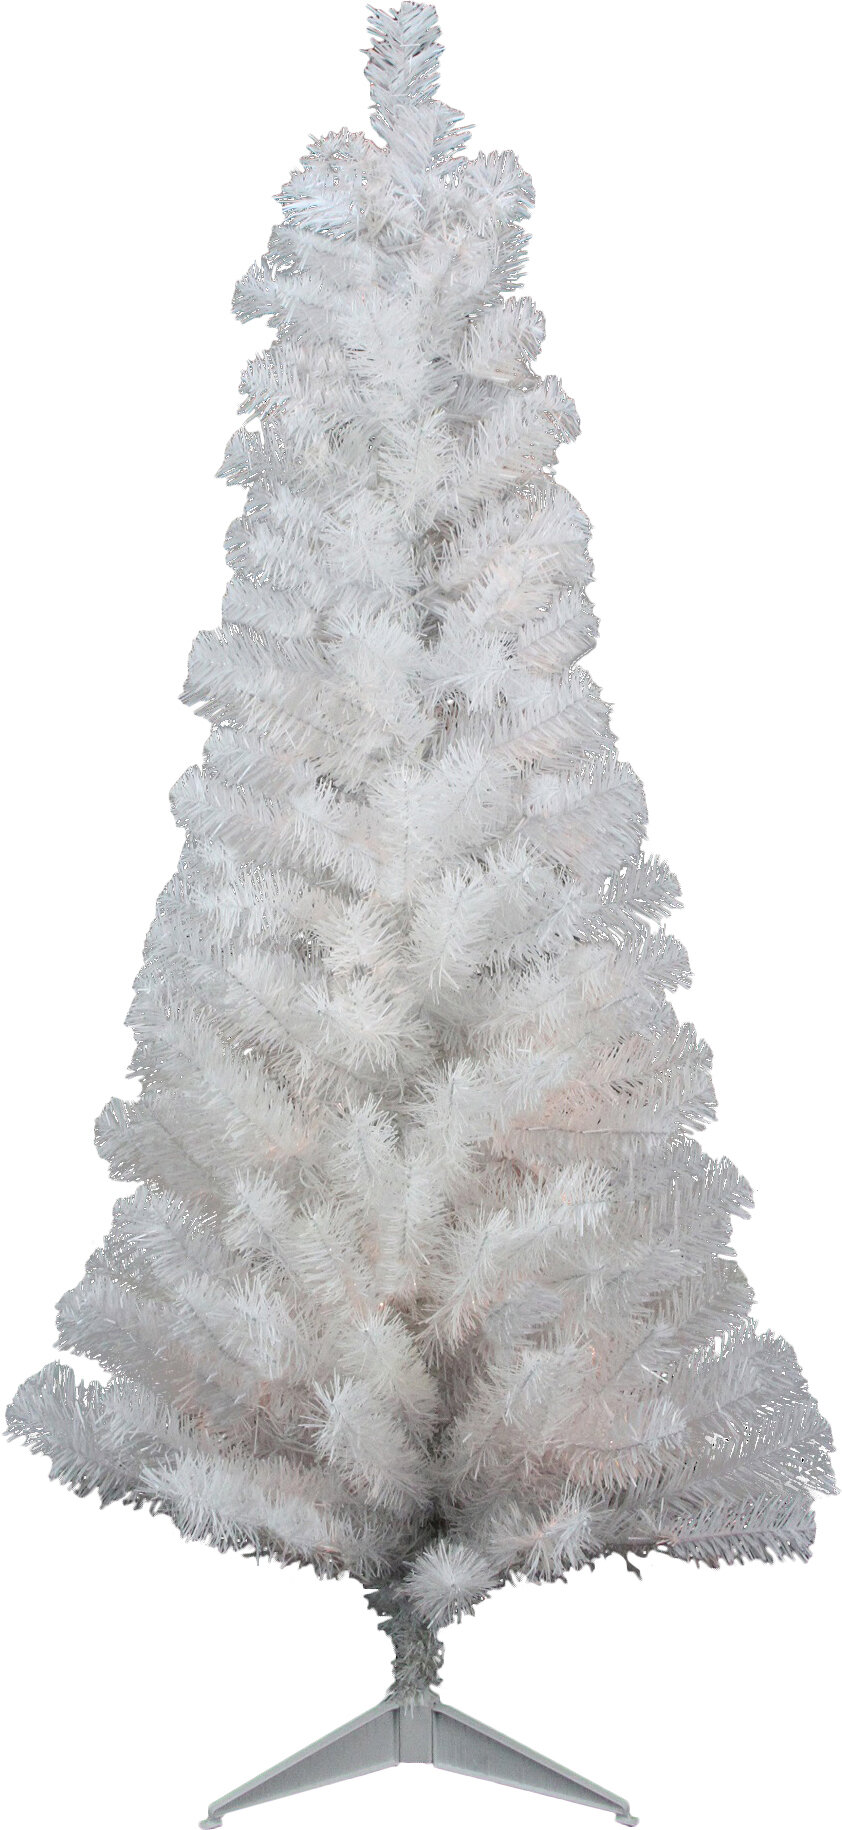 Northlight 4 White Artificial Christmas Tree With Unlit Light Stand And Tinsel Branches Wayfair